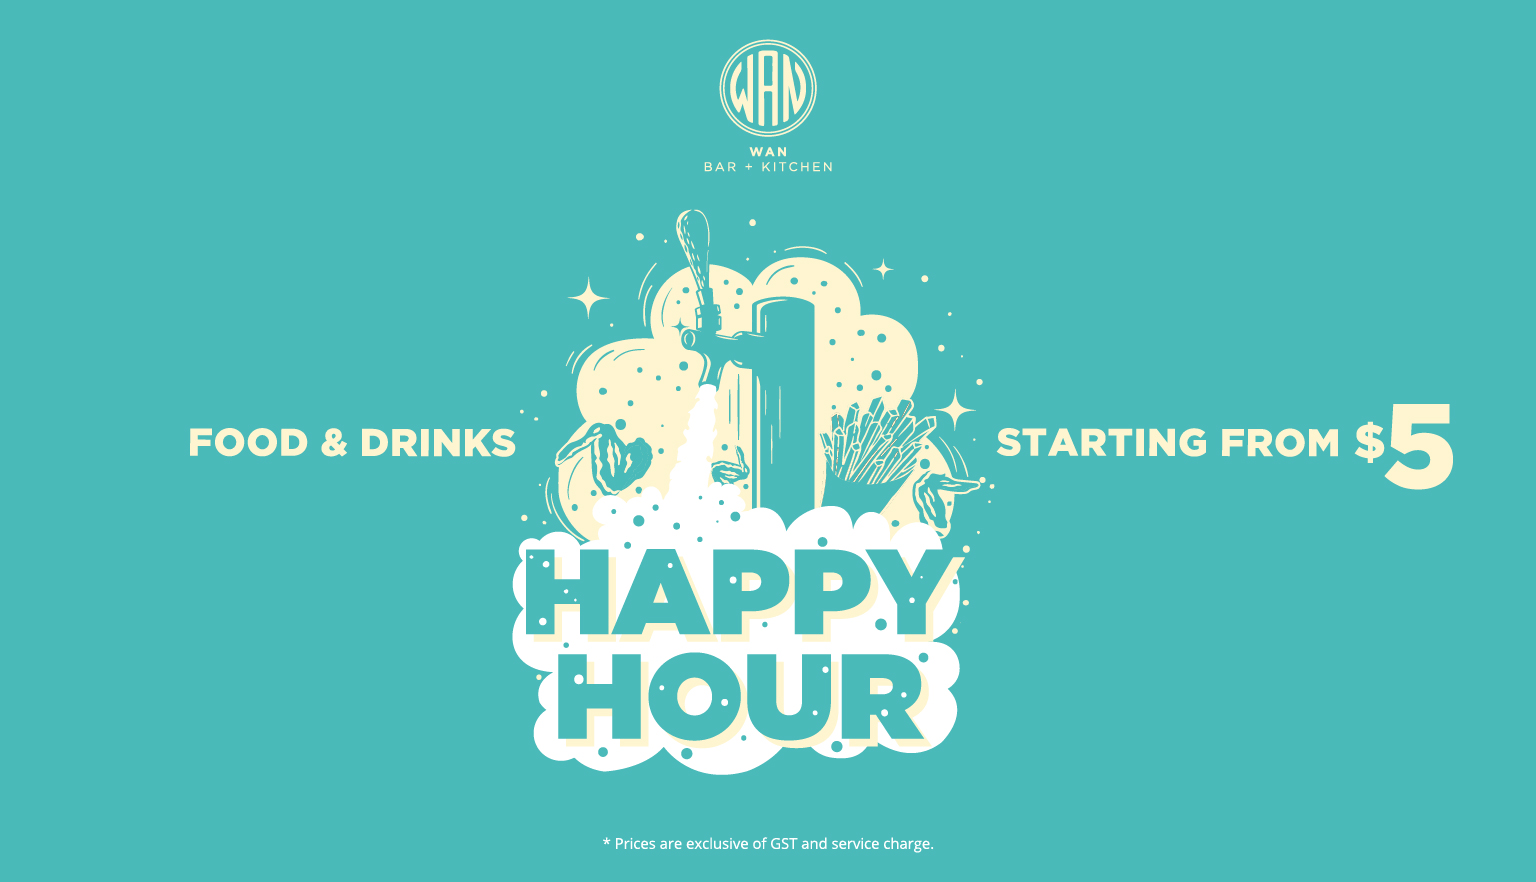 d6498e2988 Enjoy  5 house pour spirits and wine daily at WAN WAN Bar Kitchen during  Happy Hour